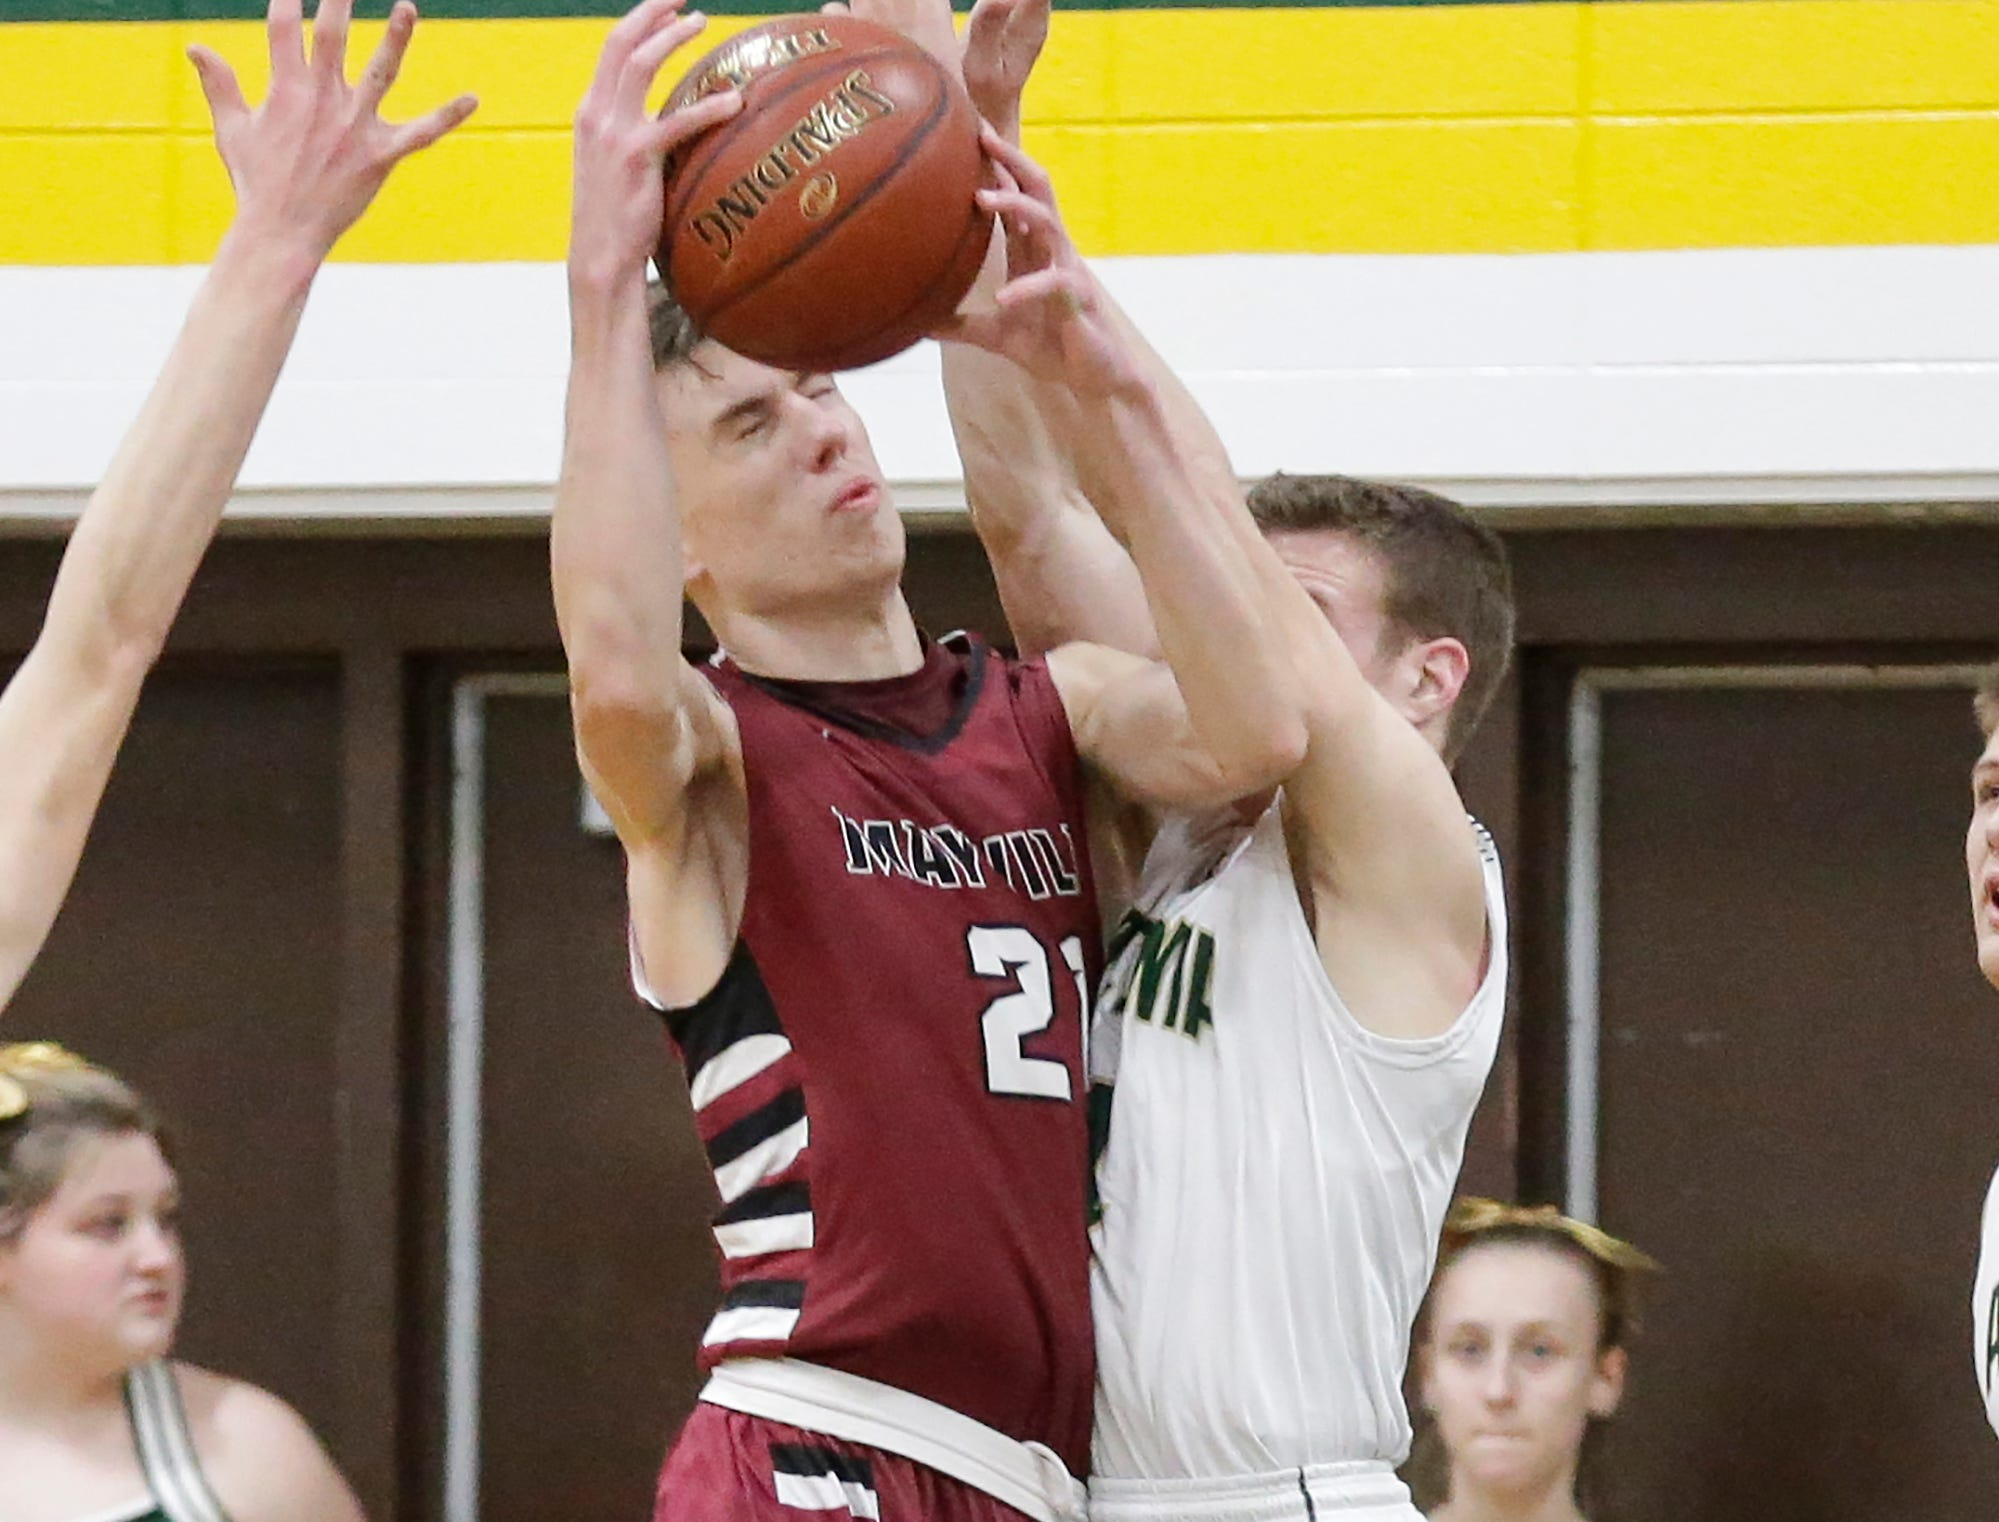 Mayville High School boys basketball's Jackson Mittelstadt and Laconia High School's Jake Davies collide during their game Friday, January 25, 2019 in Rosendale. Laconia won the game 80-54. Doug Raflik/USA TODAY NETWORK-Wisconsin